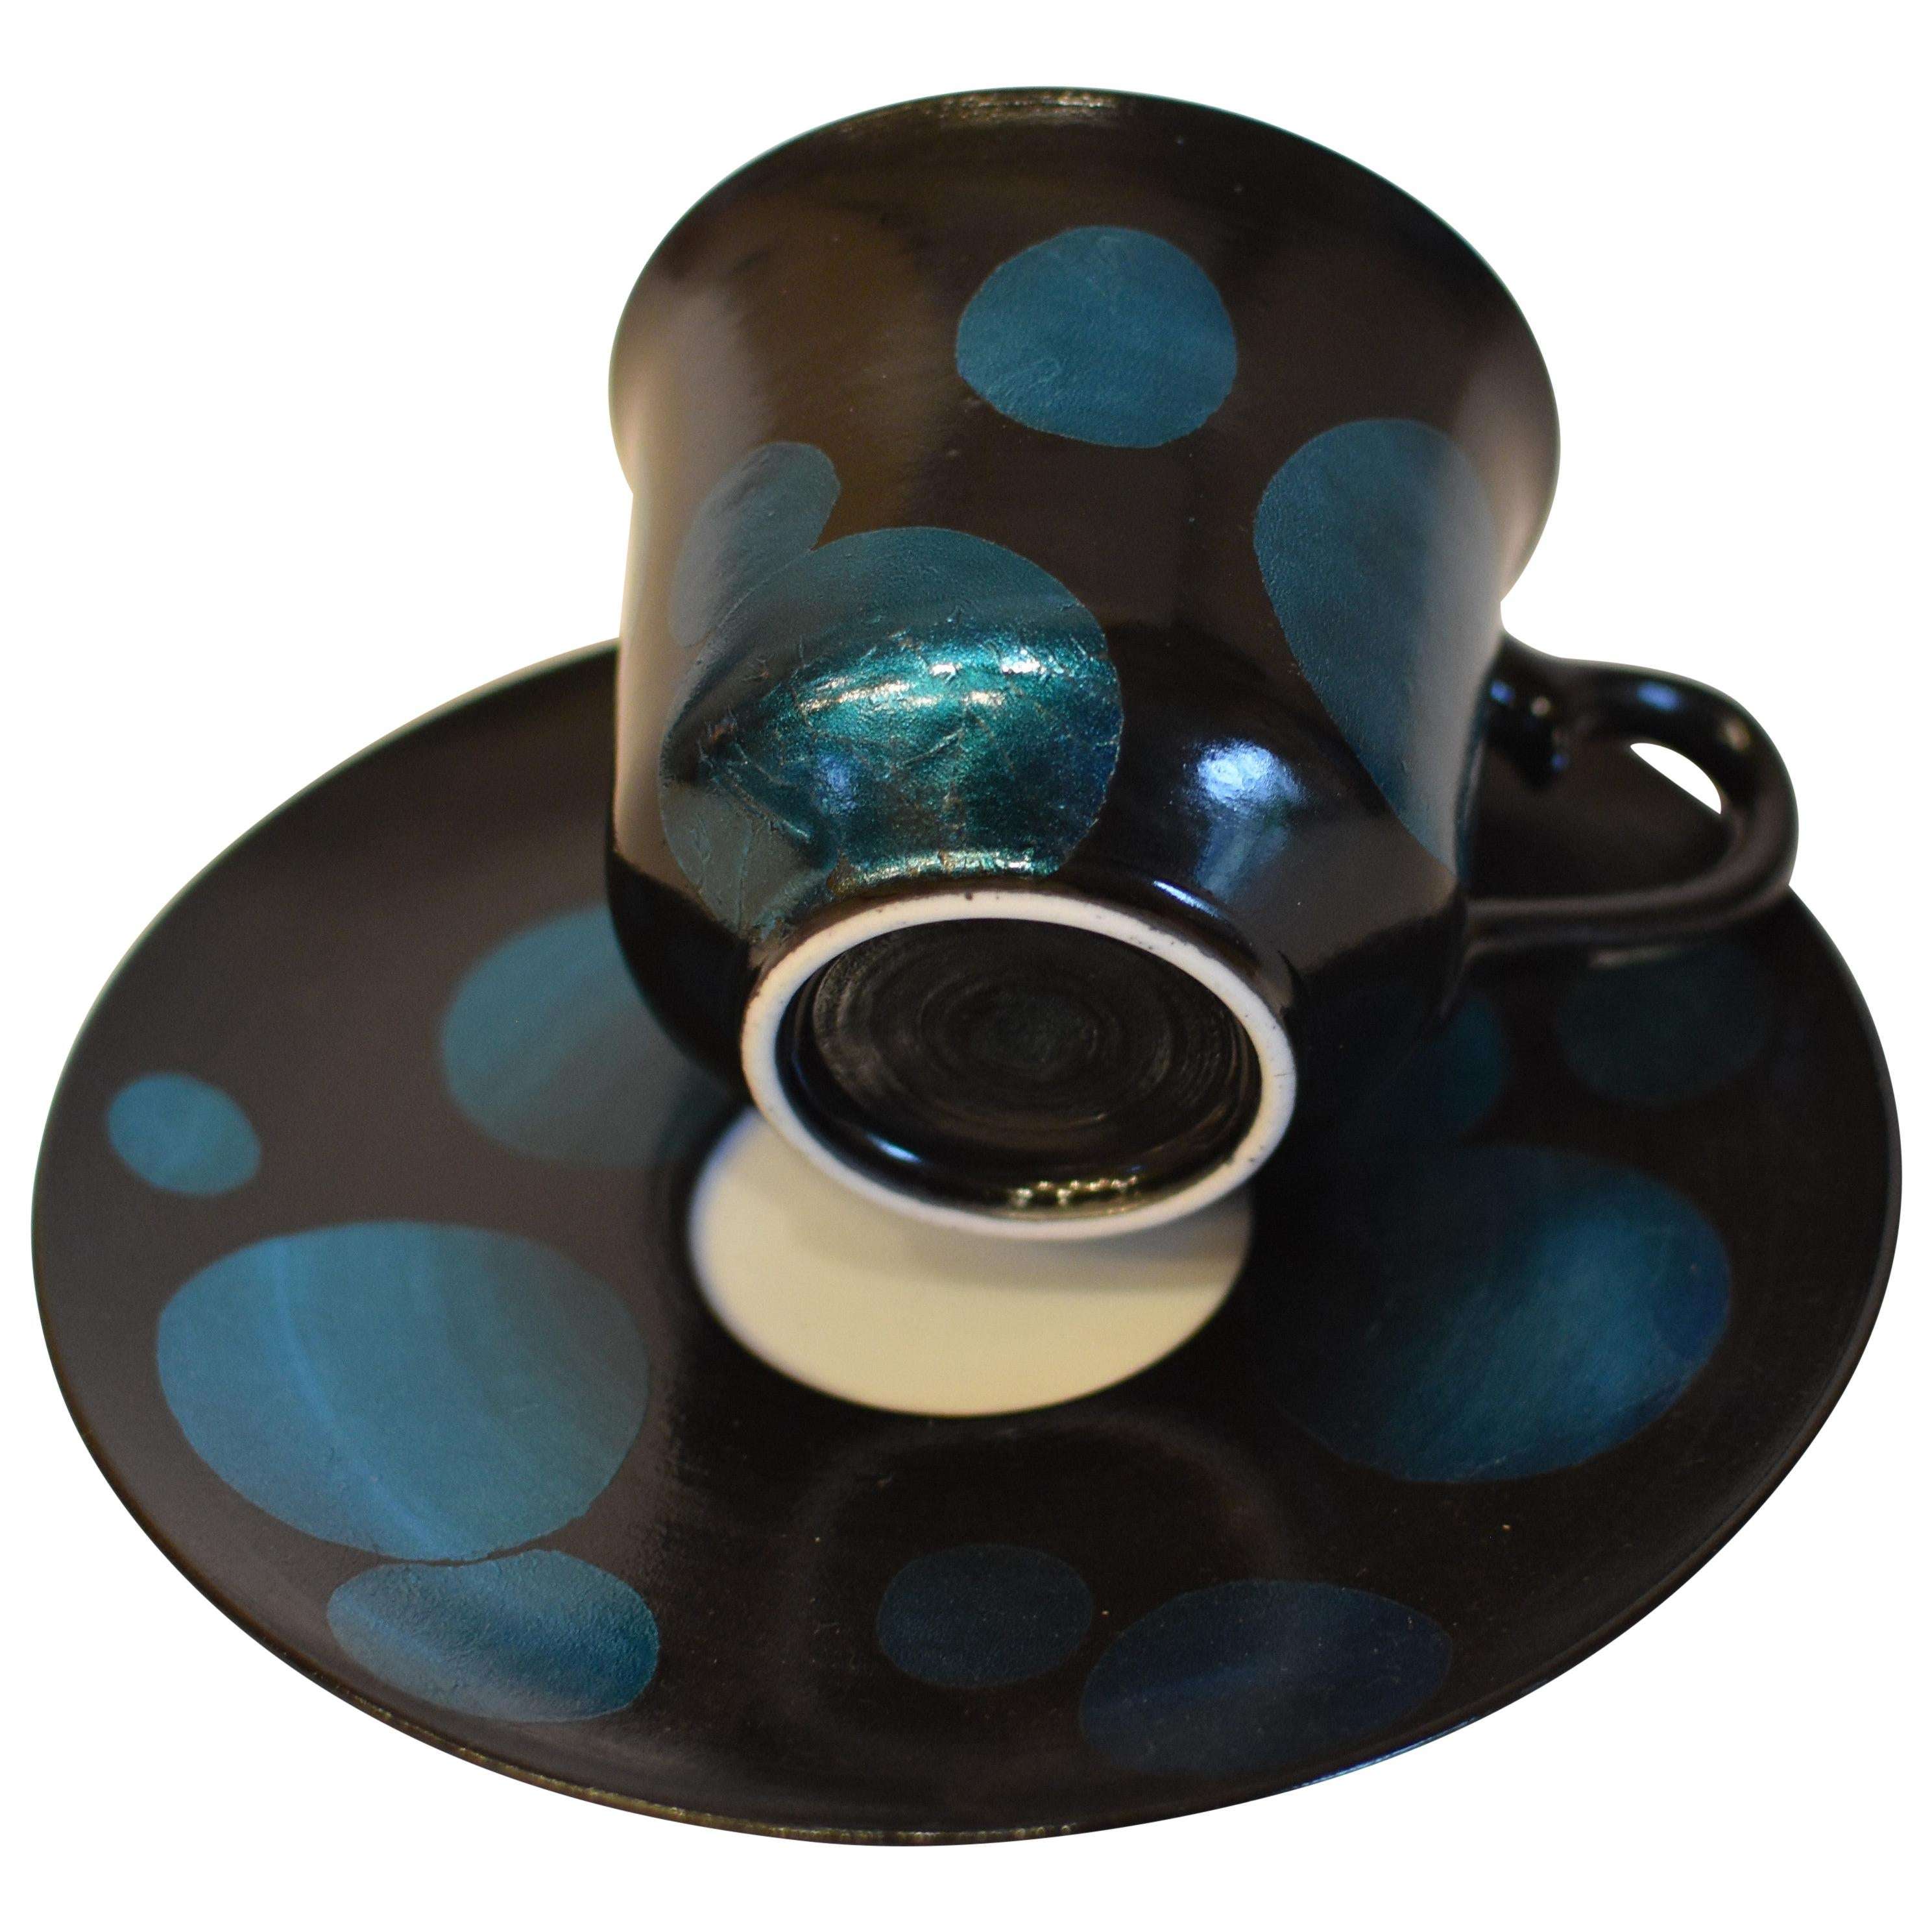 Japanese Blue Silver Leaf Porcelain Cup and Saucer by Master Artist